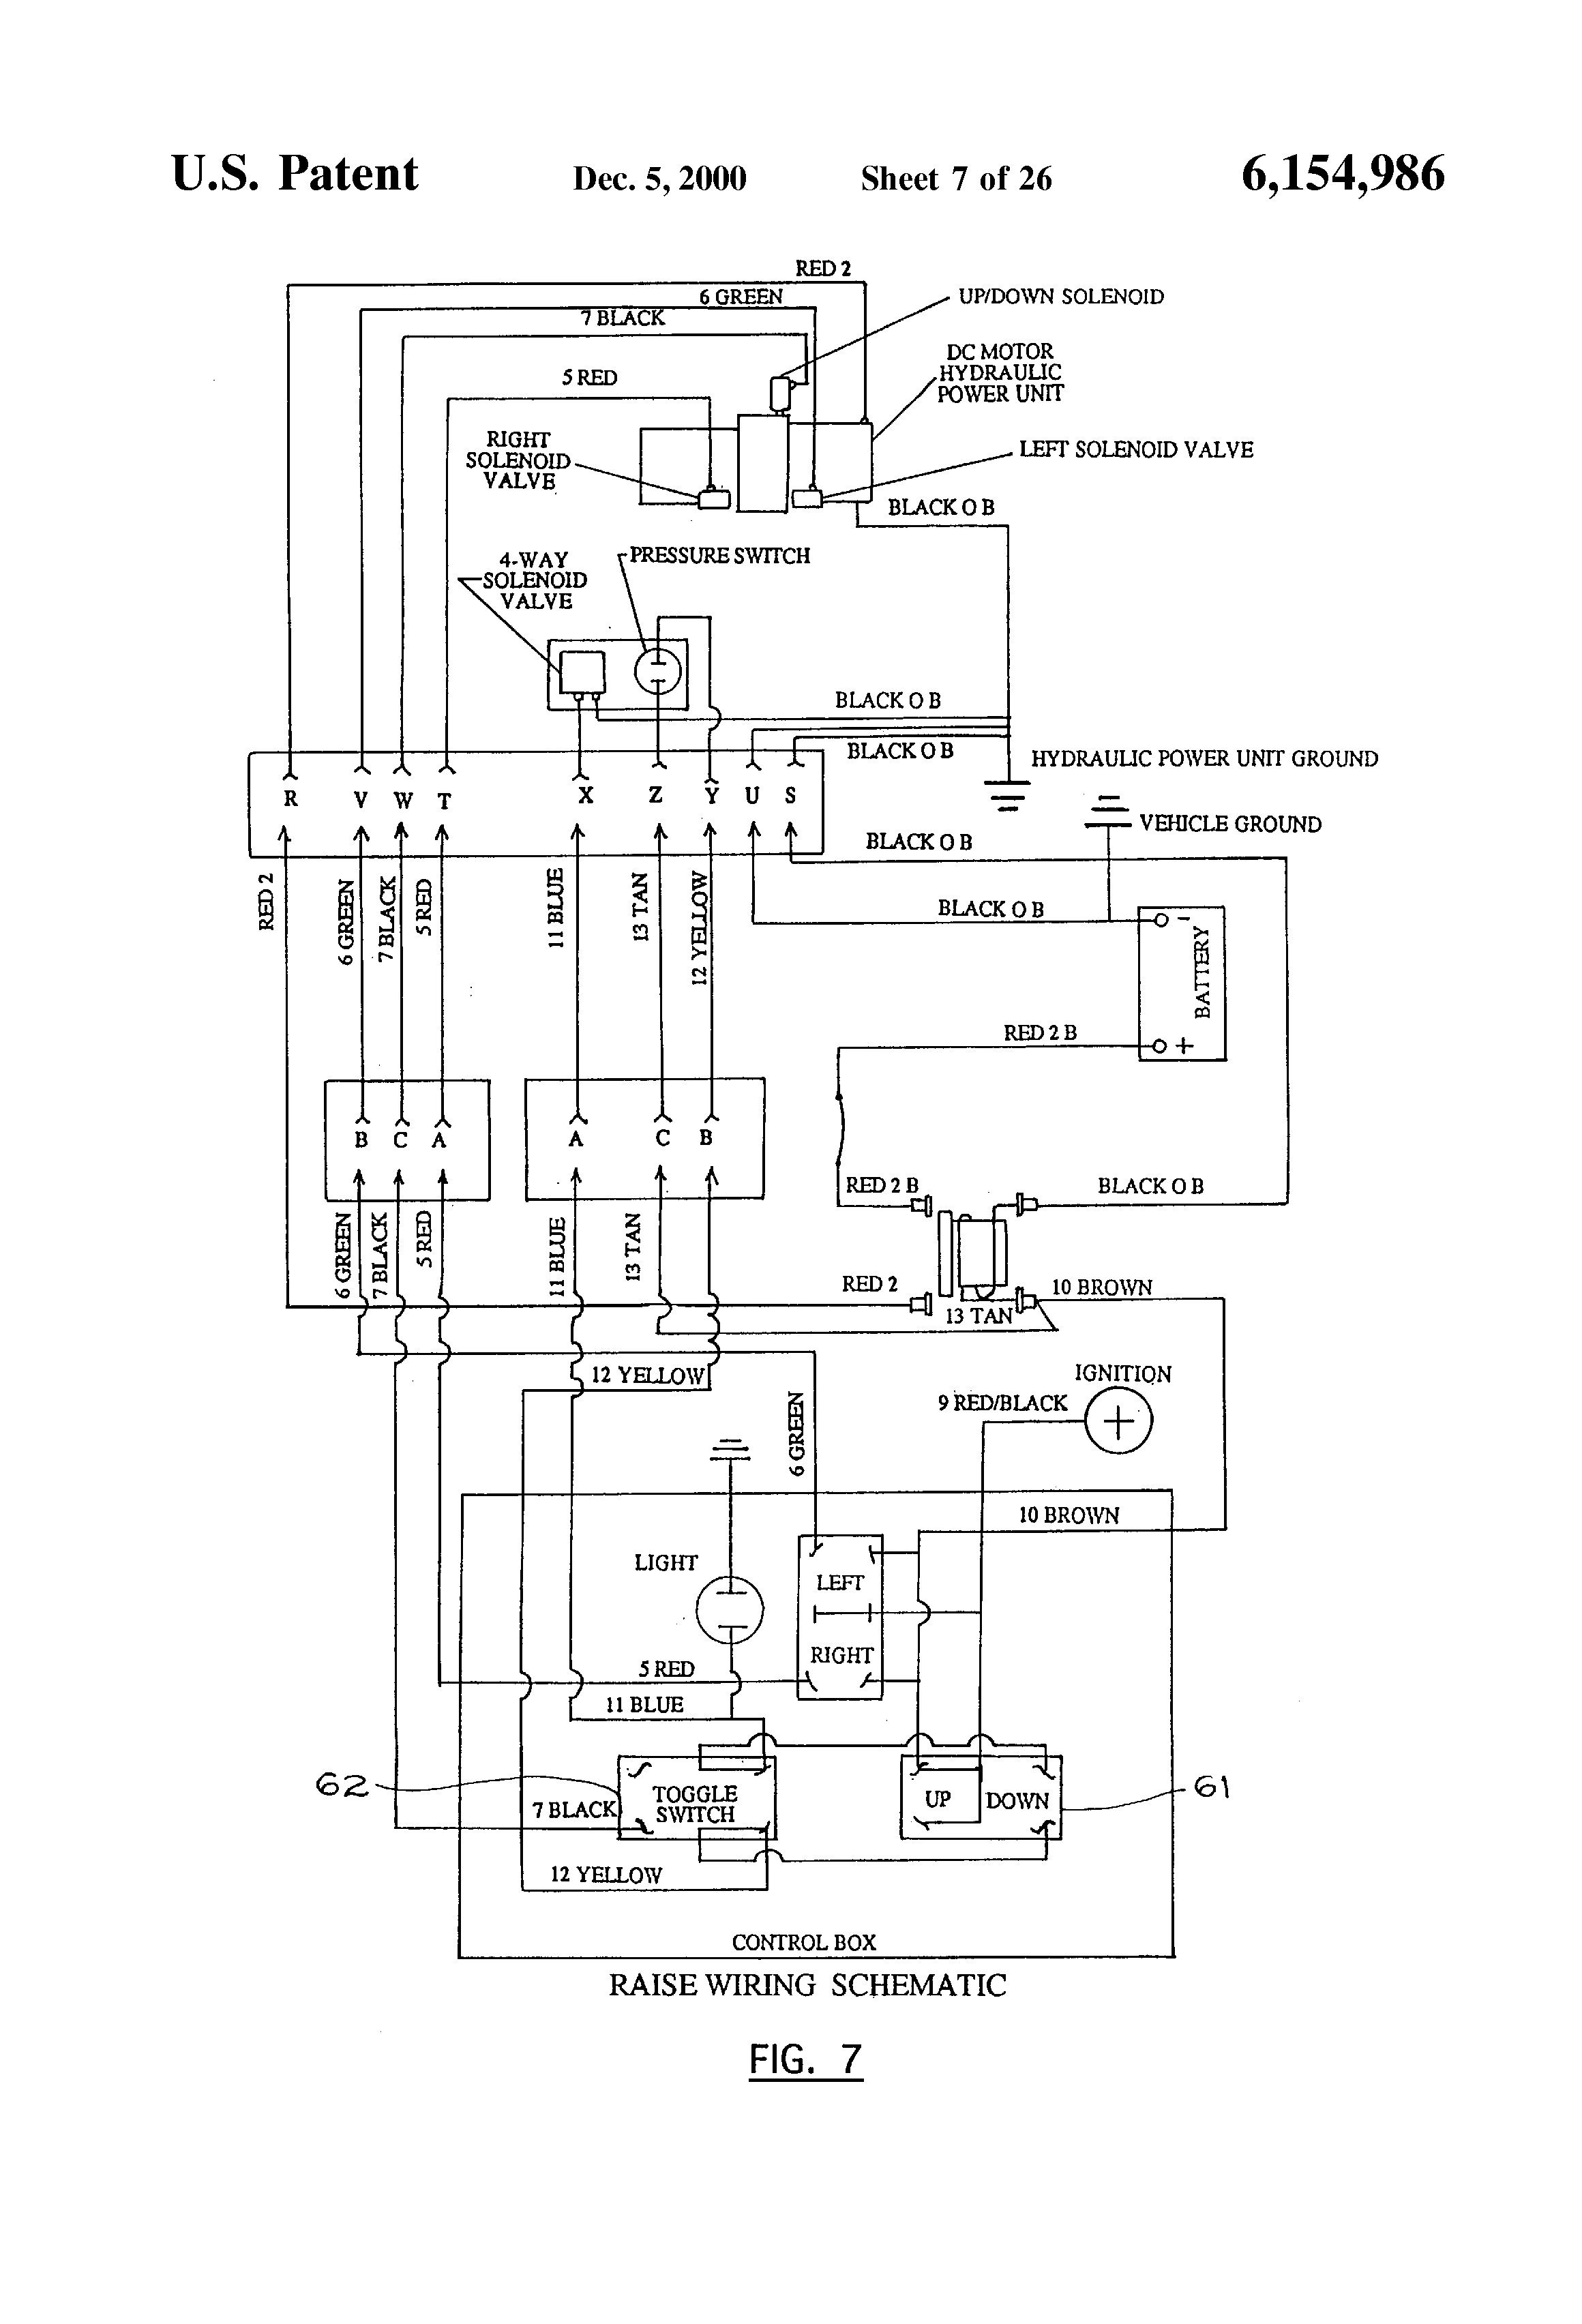 Western Unimount 9 Pin Wiring Diagram : Western unimount wiring diagram pin ultra mount